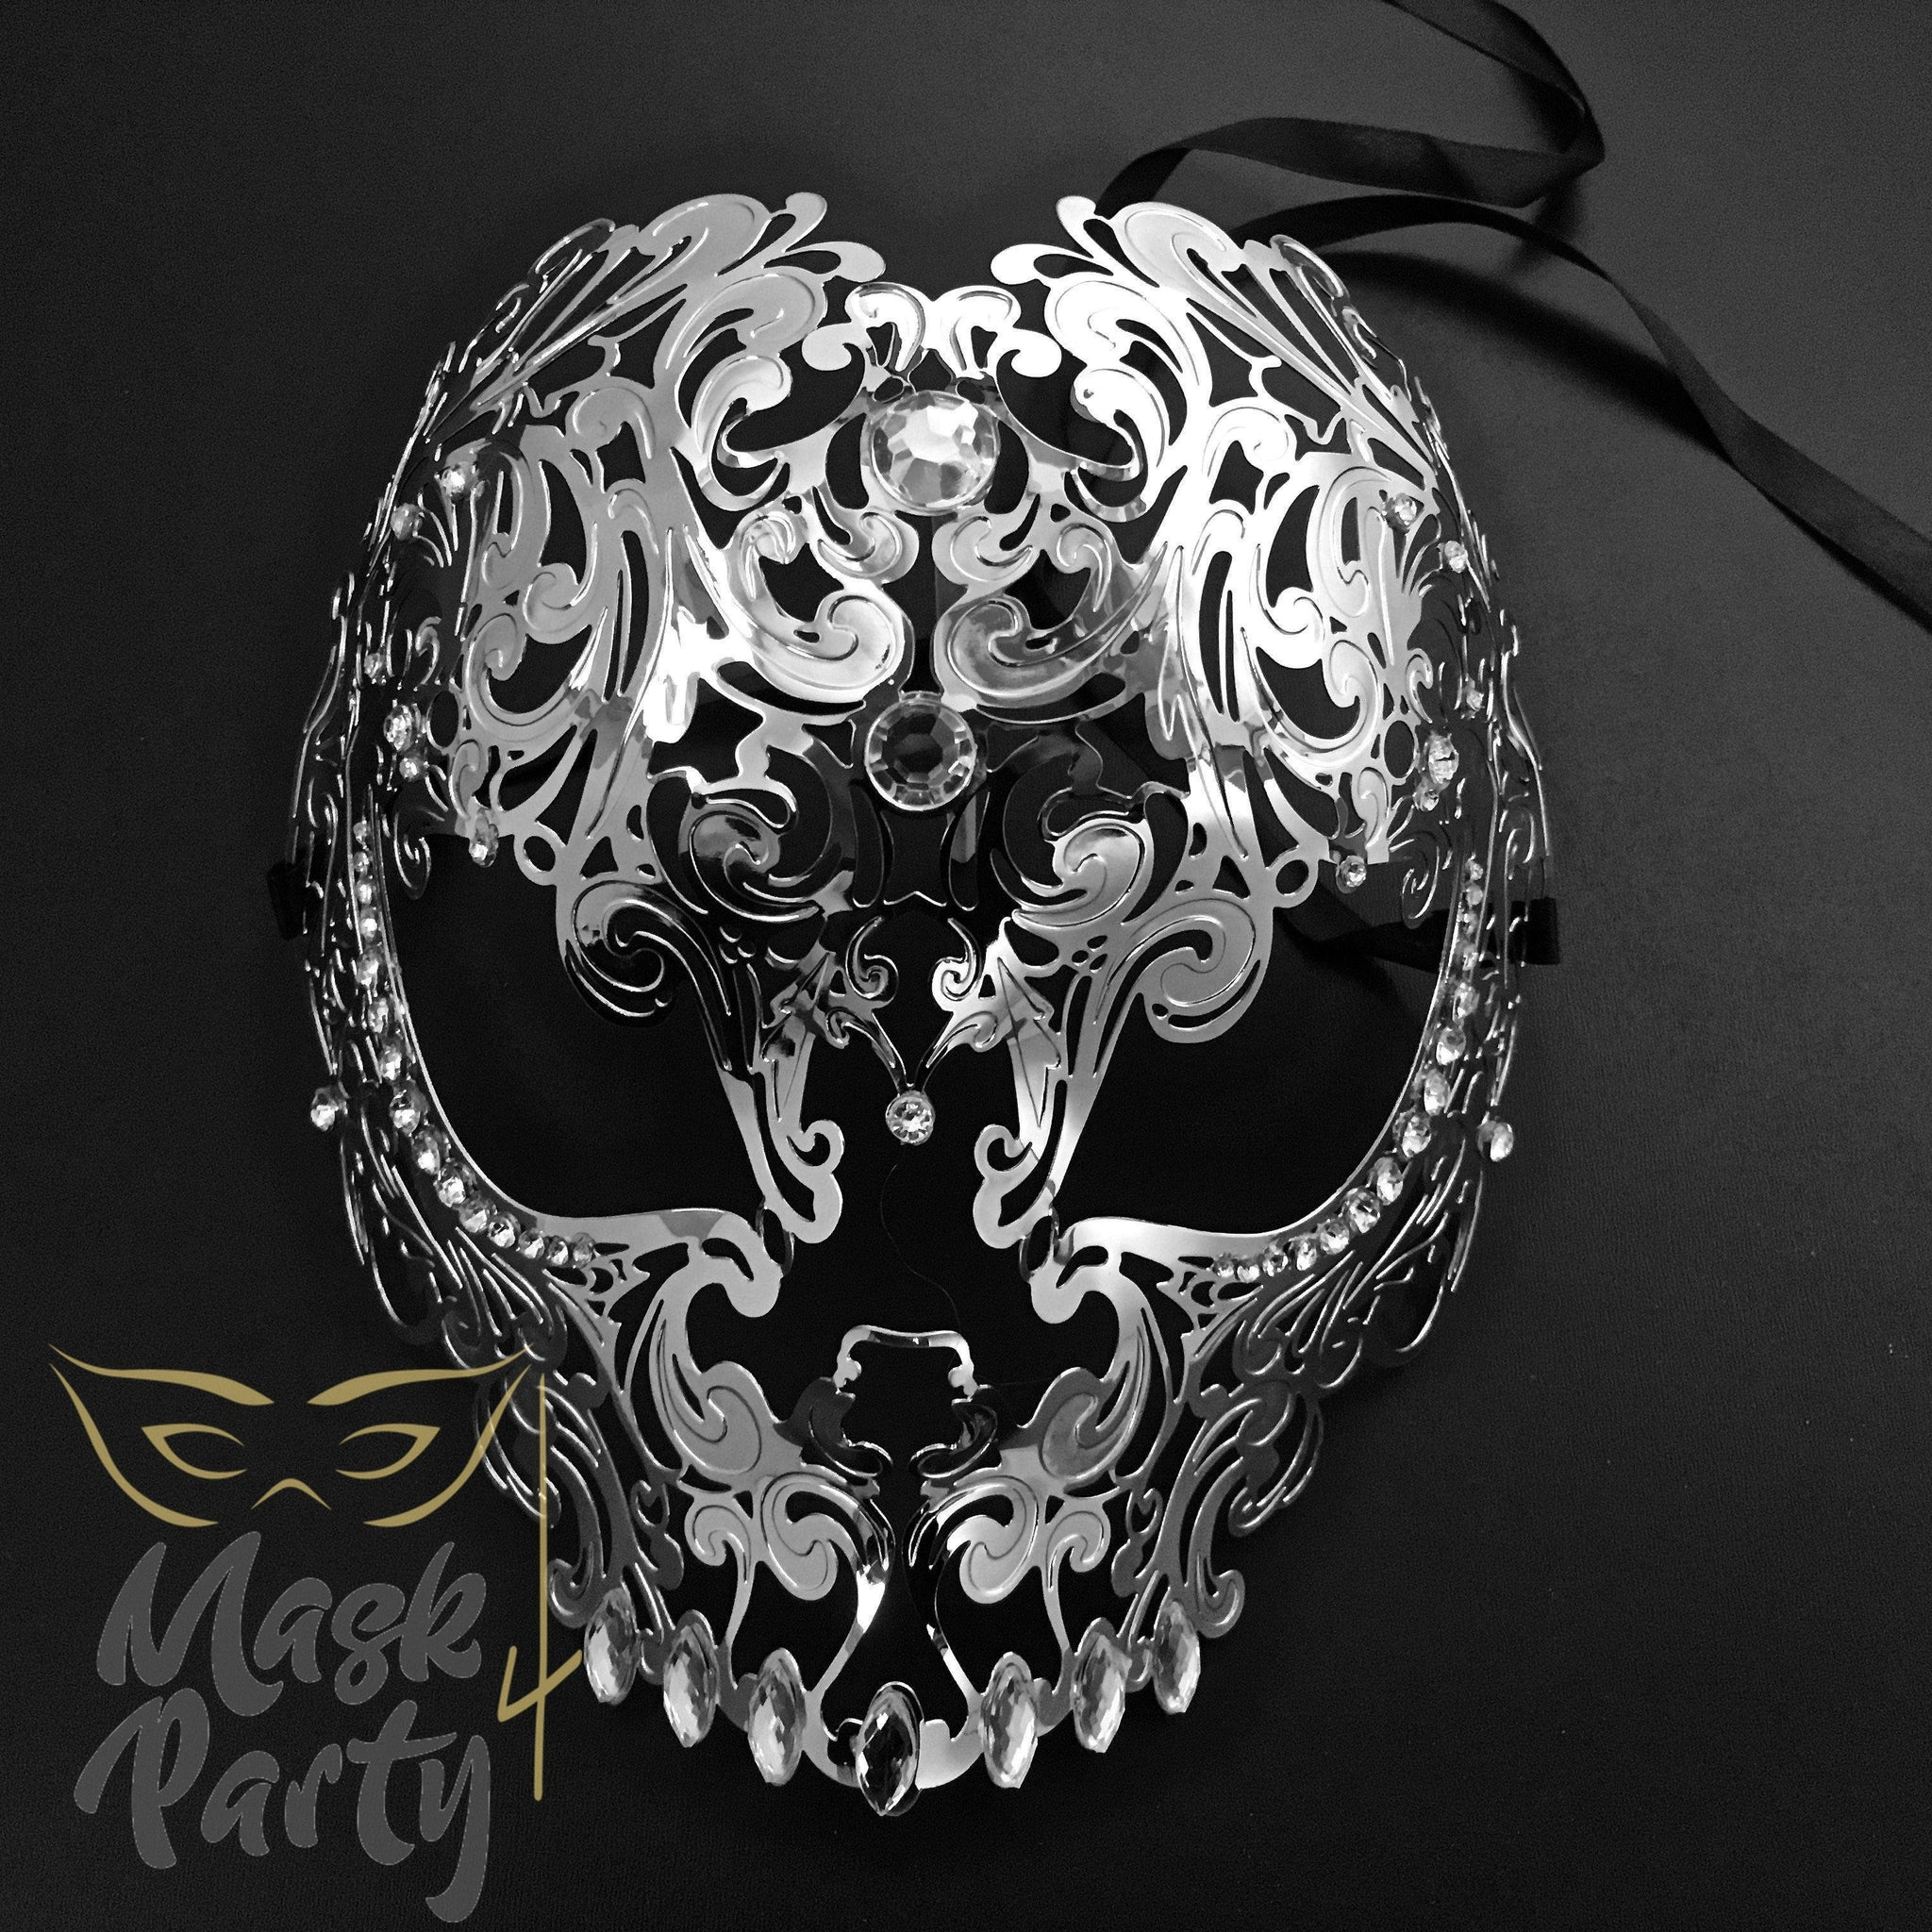 Masquerade Mask - Filigree Metal Skull Full Face - Silver - Mask4Party